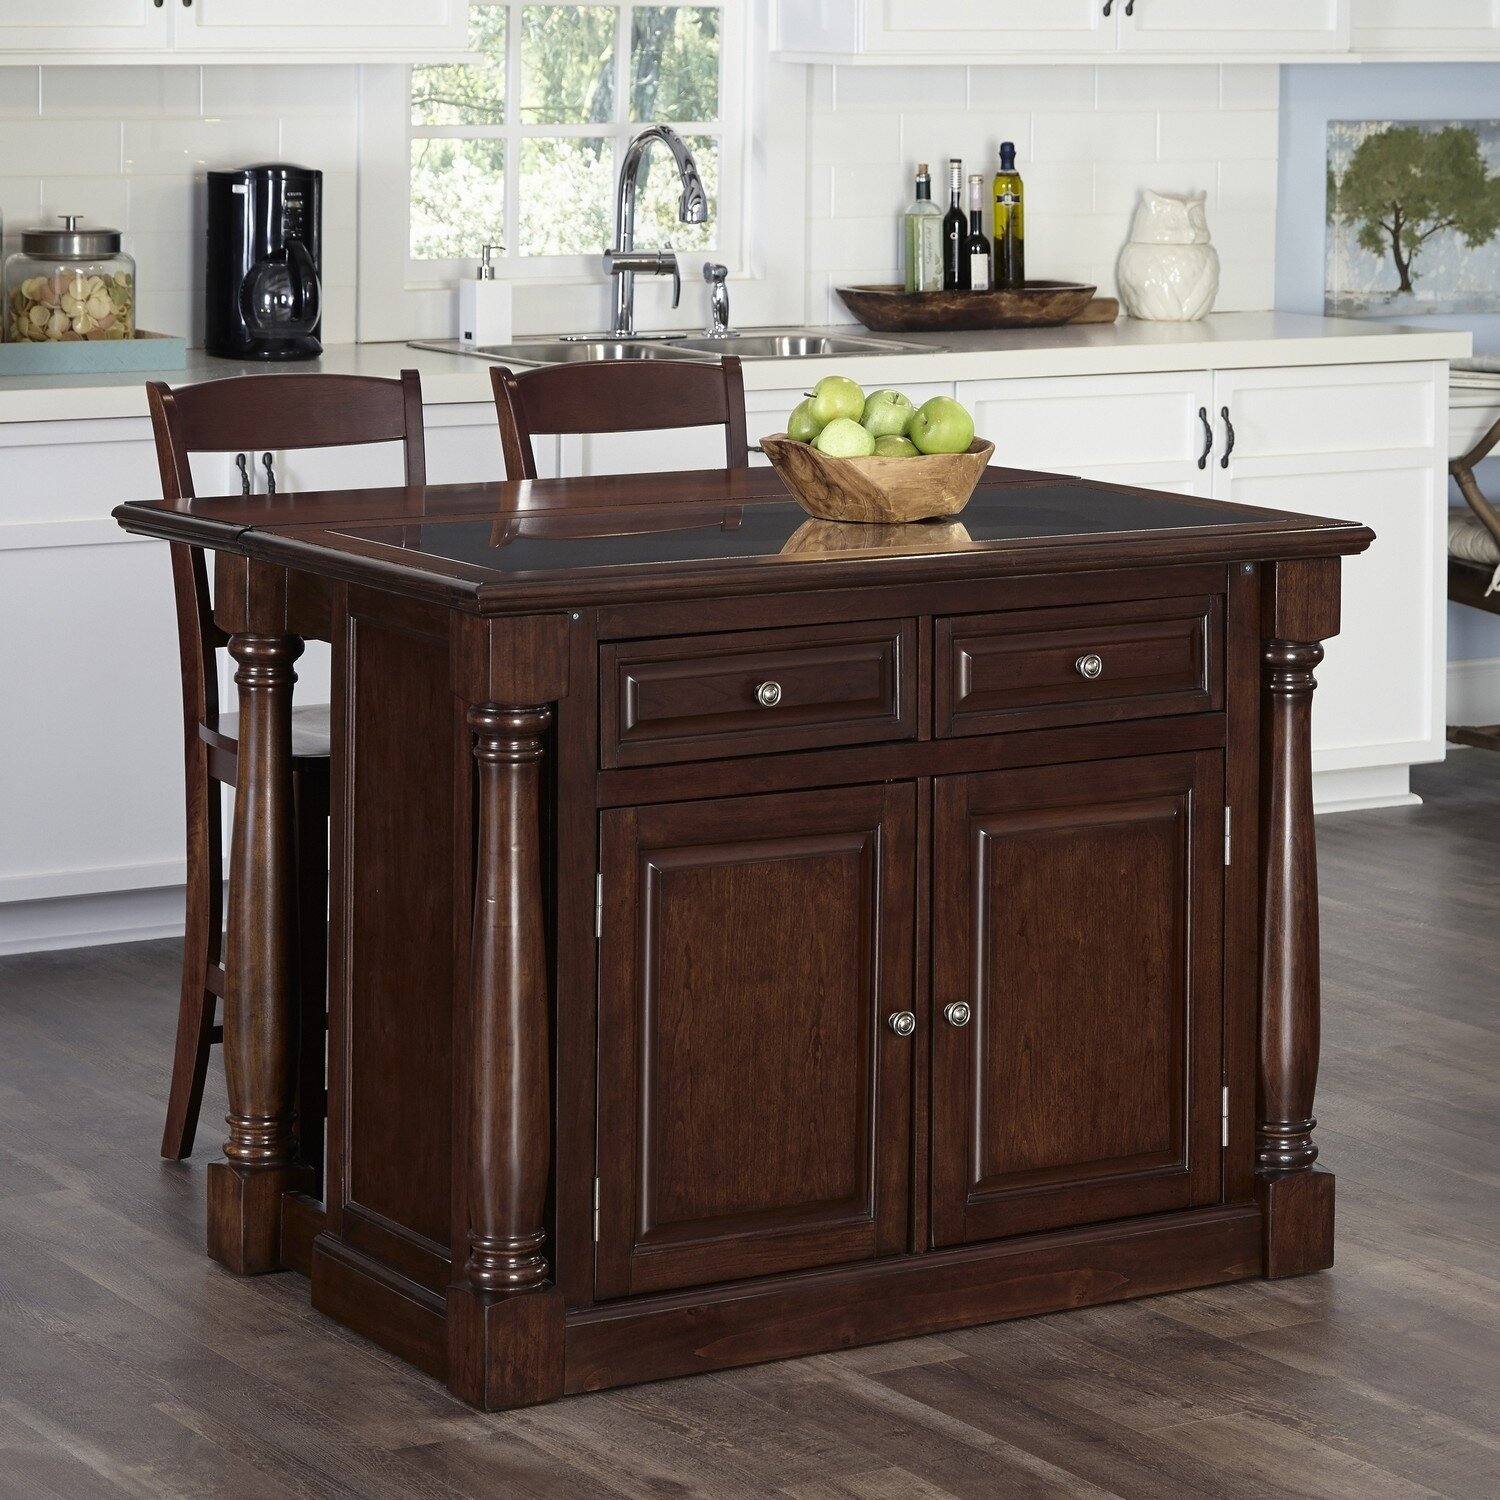 August Grove Shyanne Kitchen Island Set with Granite Top & Reviews